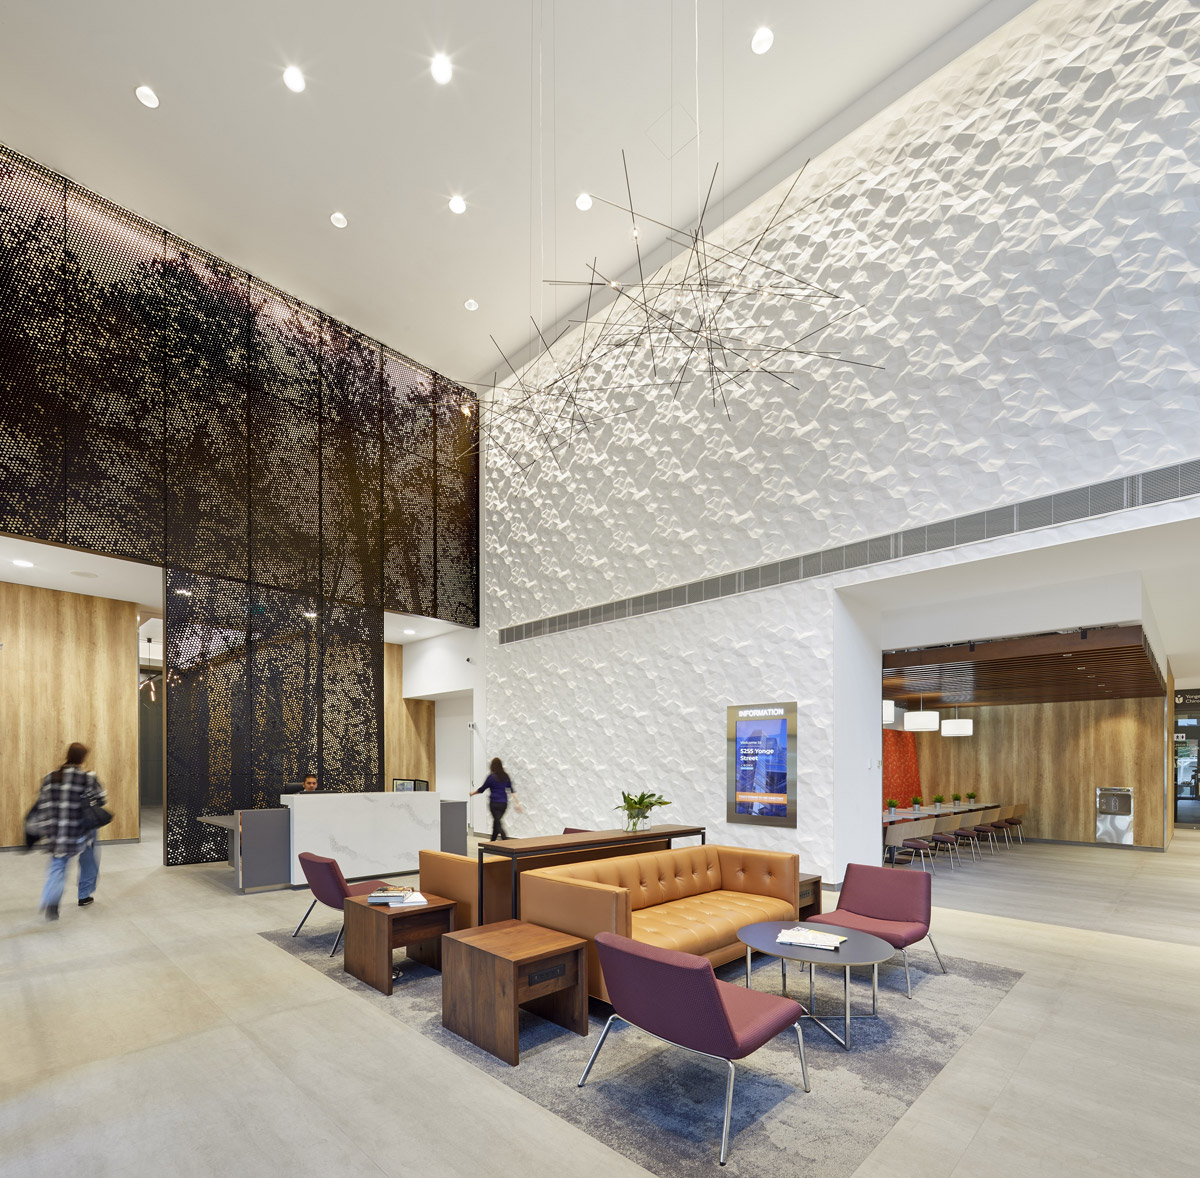 office design, Striking Sculptural Transformation for Dated Office Tower